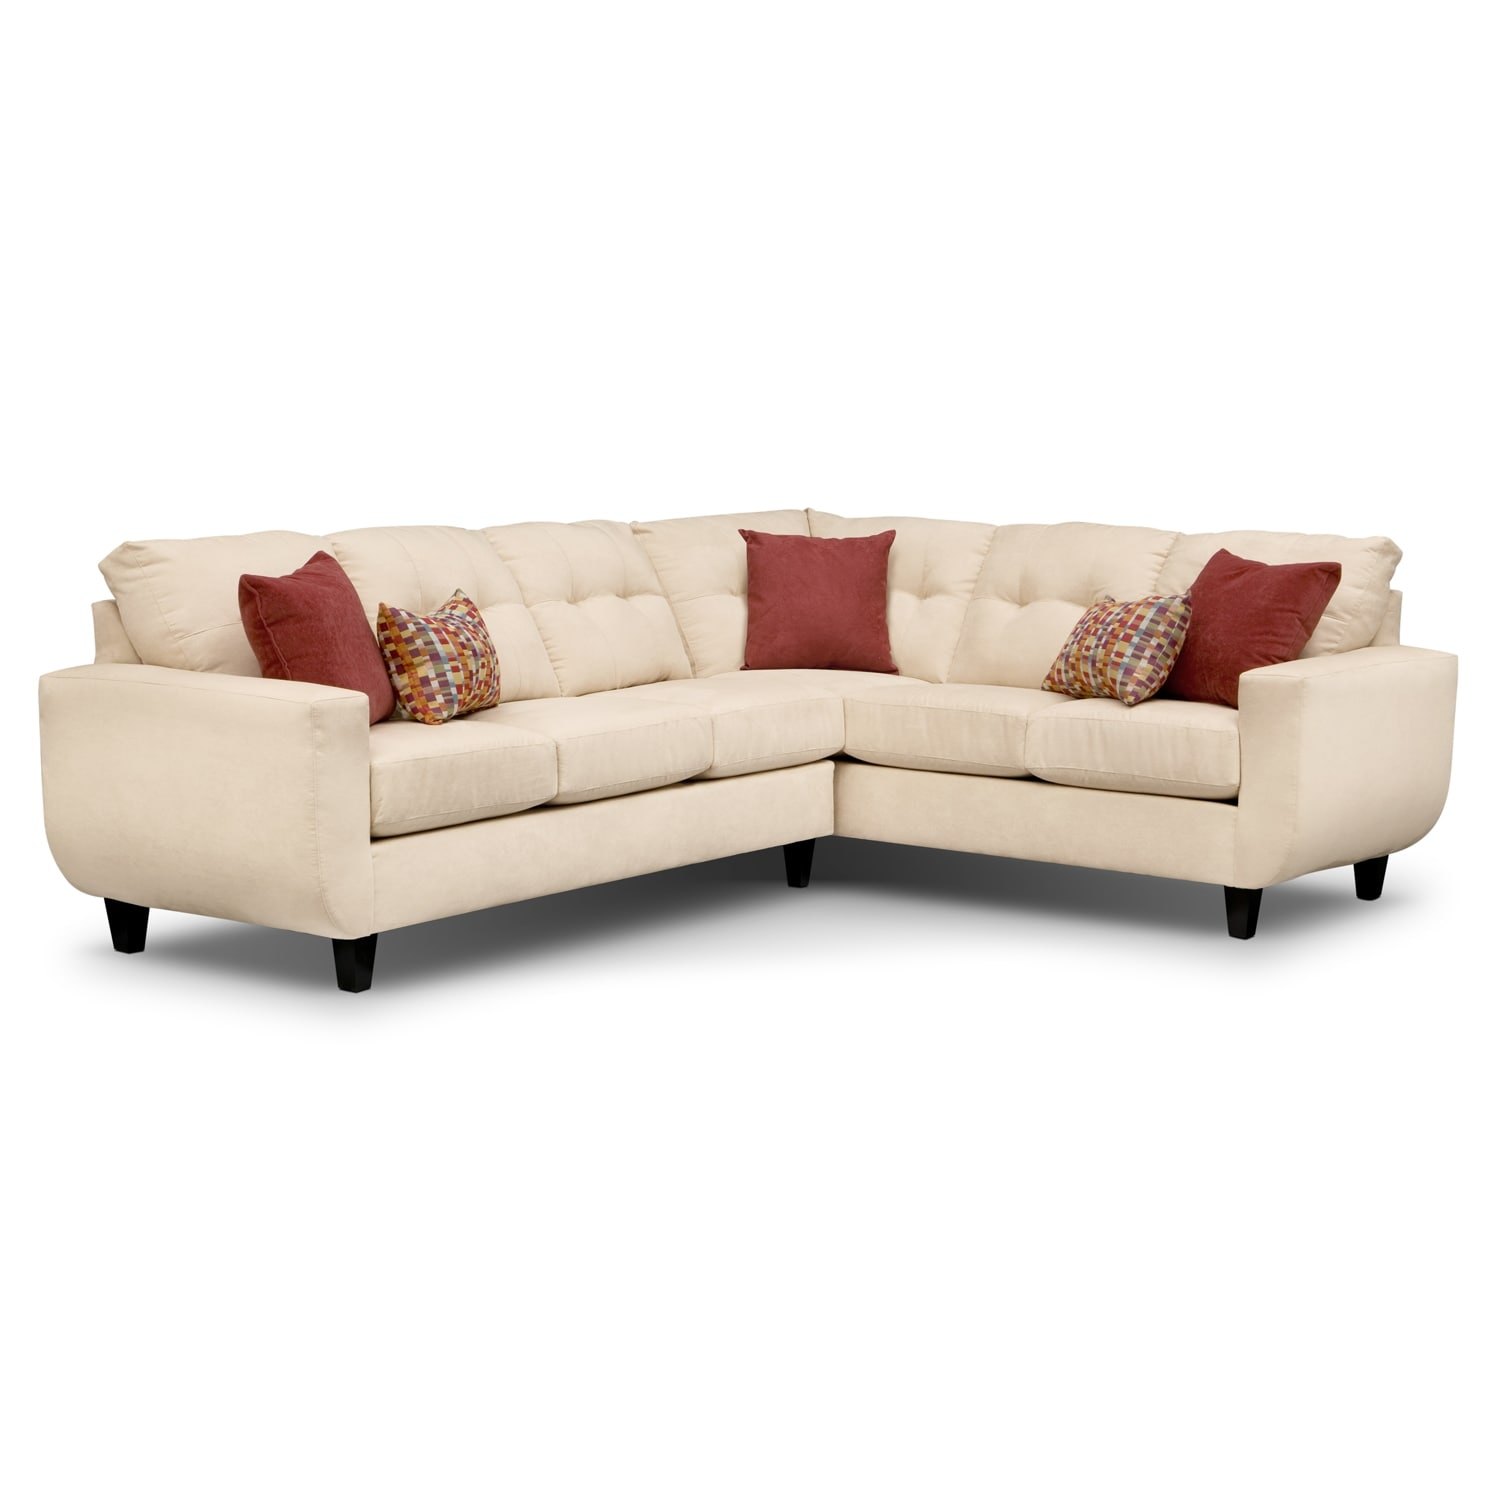 West Village 2-Piece Sectional - Cream